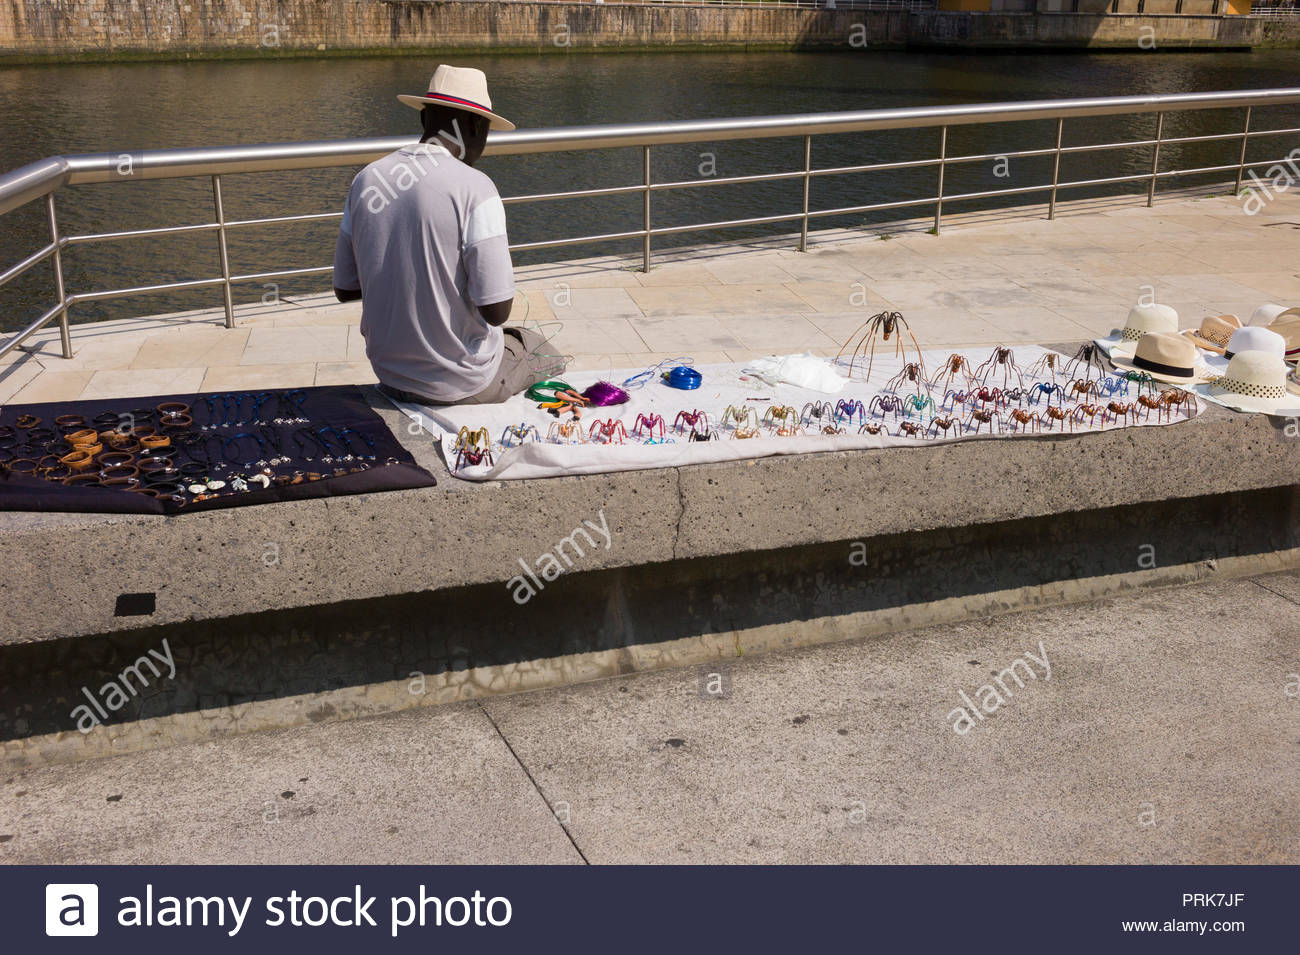 Street vendor making and selling his hand made models of the spider sculpture at the Guggenheim Museum in Bilbao, Spain Stock Photo